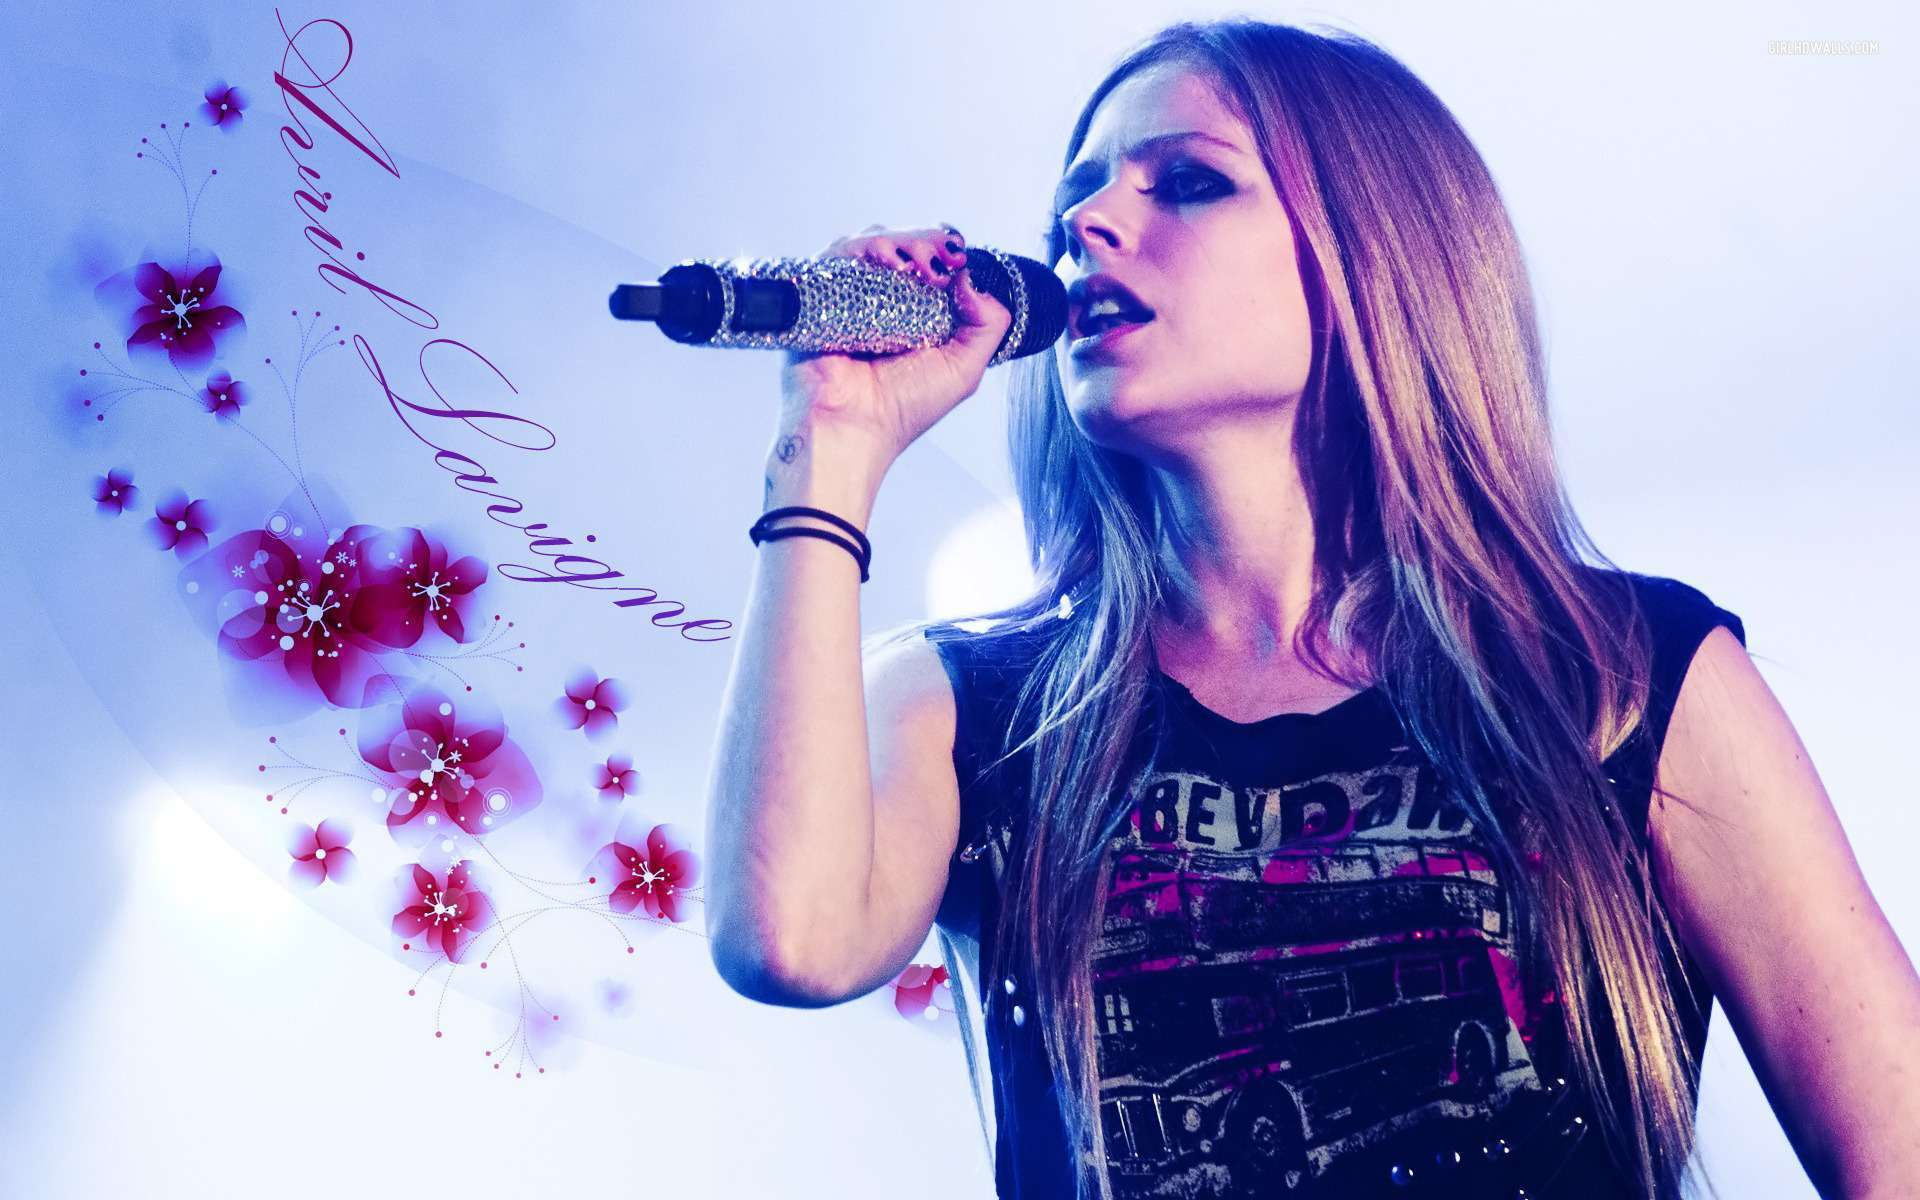 avril lavigne 34 wallpapers hd wallpapers